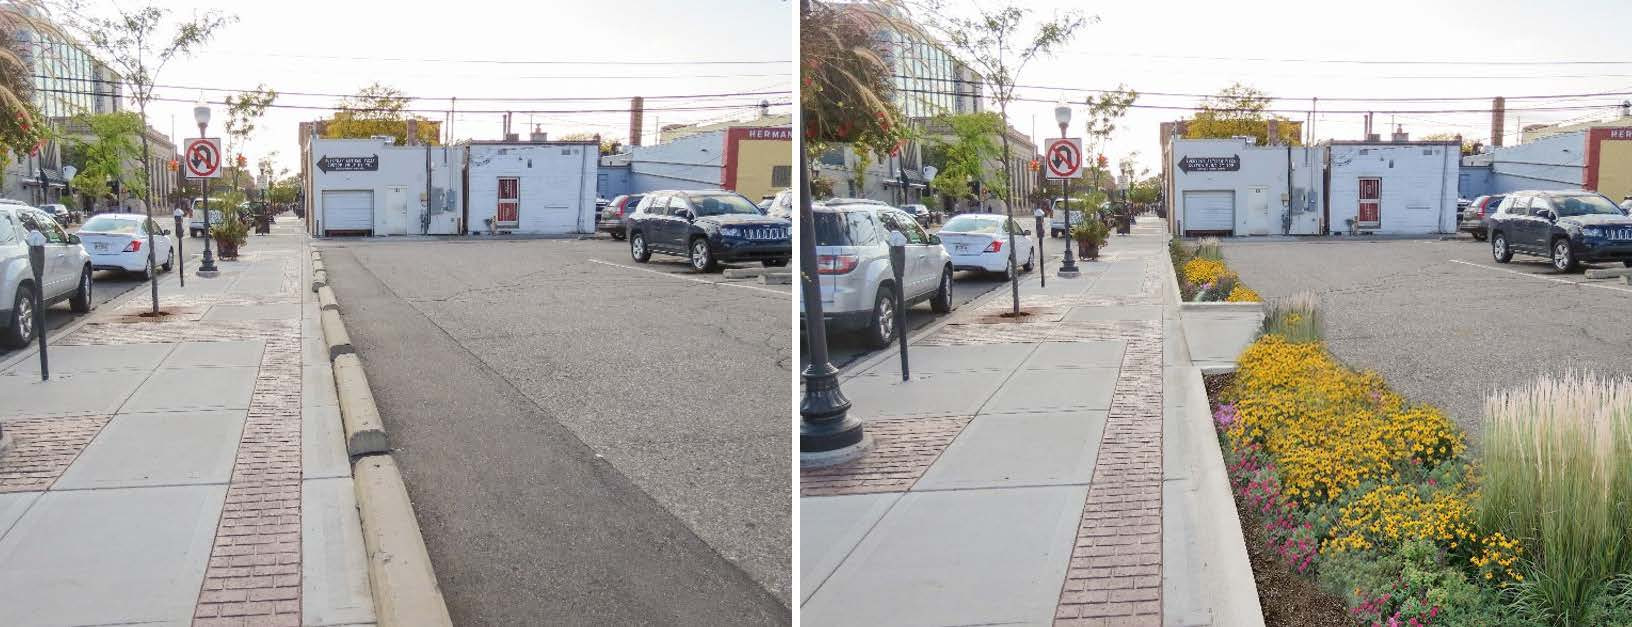 City of Royal Oak Green Infrastructure Evaluation Project